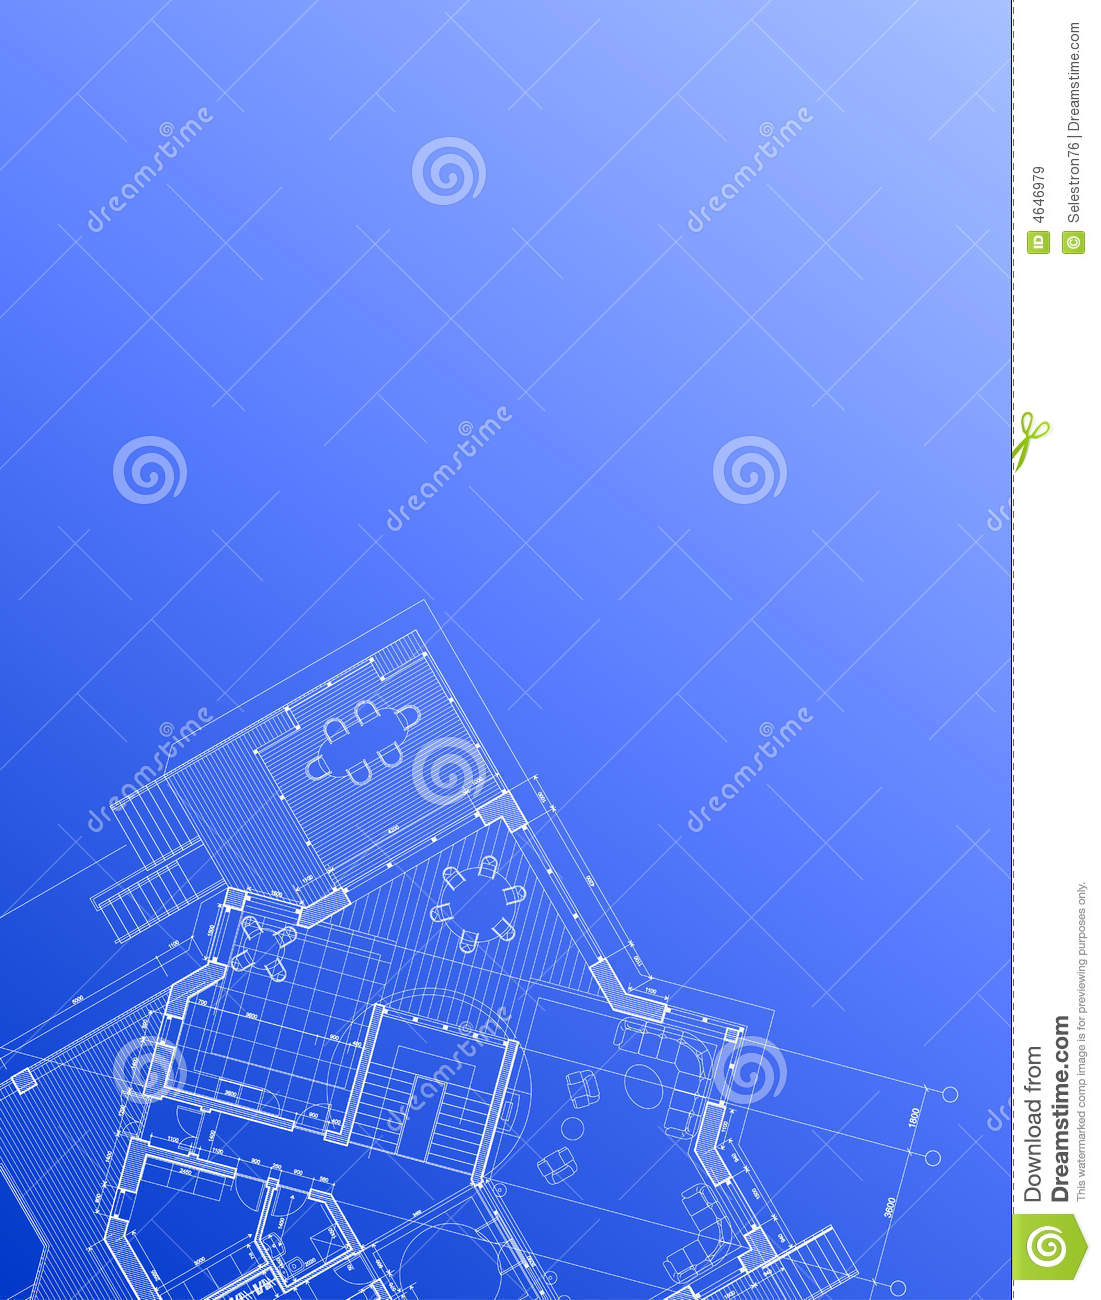 house plan vector background royalty free stock images image 4646979 house plan vector background royalty free stock images image 4646979